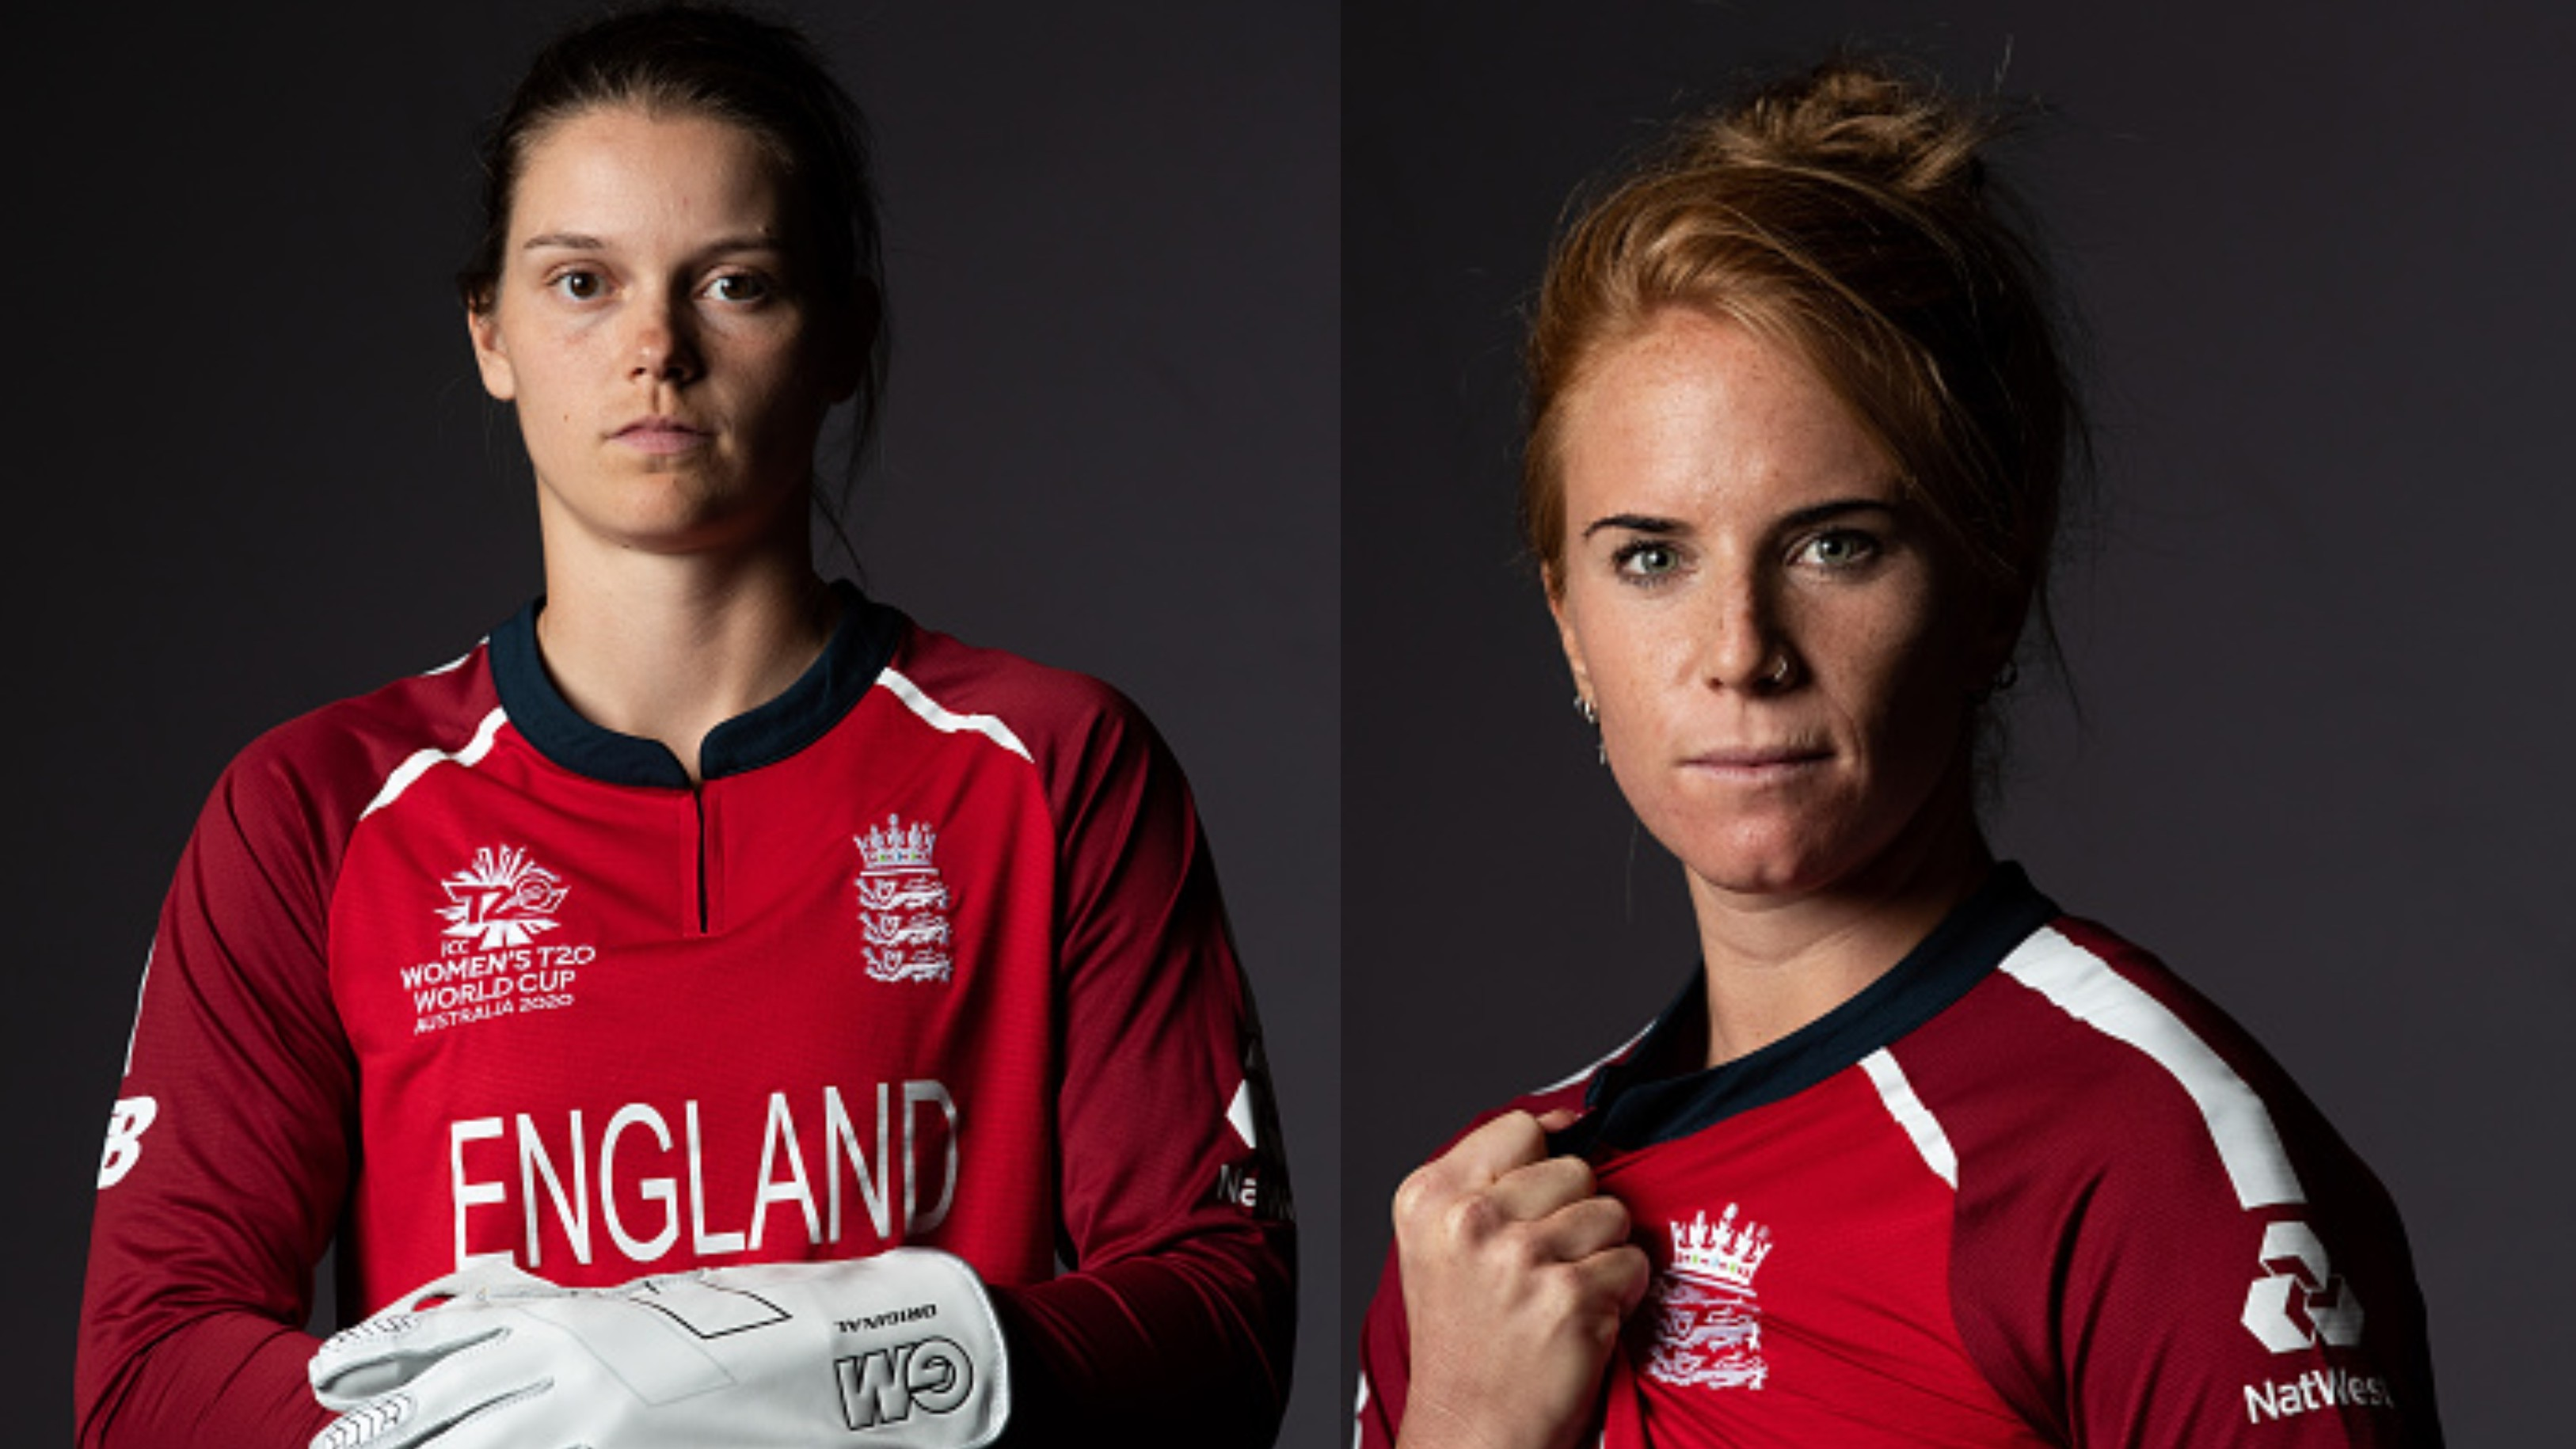 England's Lauren Winfield and Amy Jones stuck in Australia due to COVID-19 lockdown